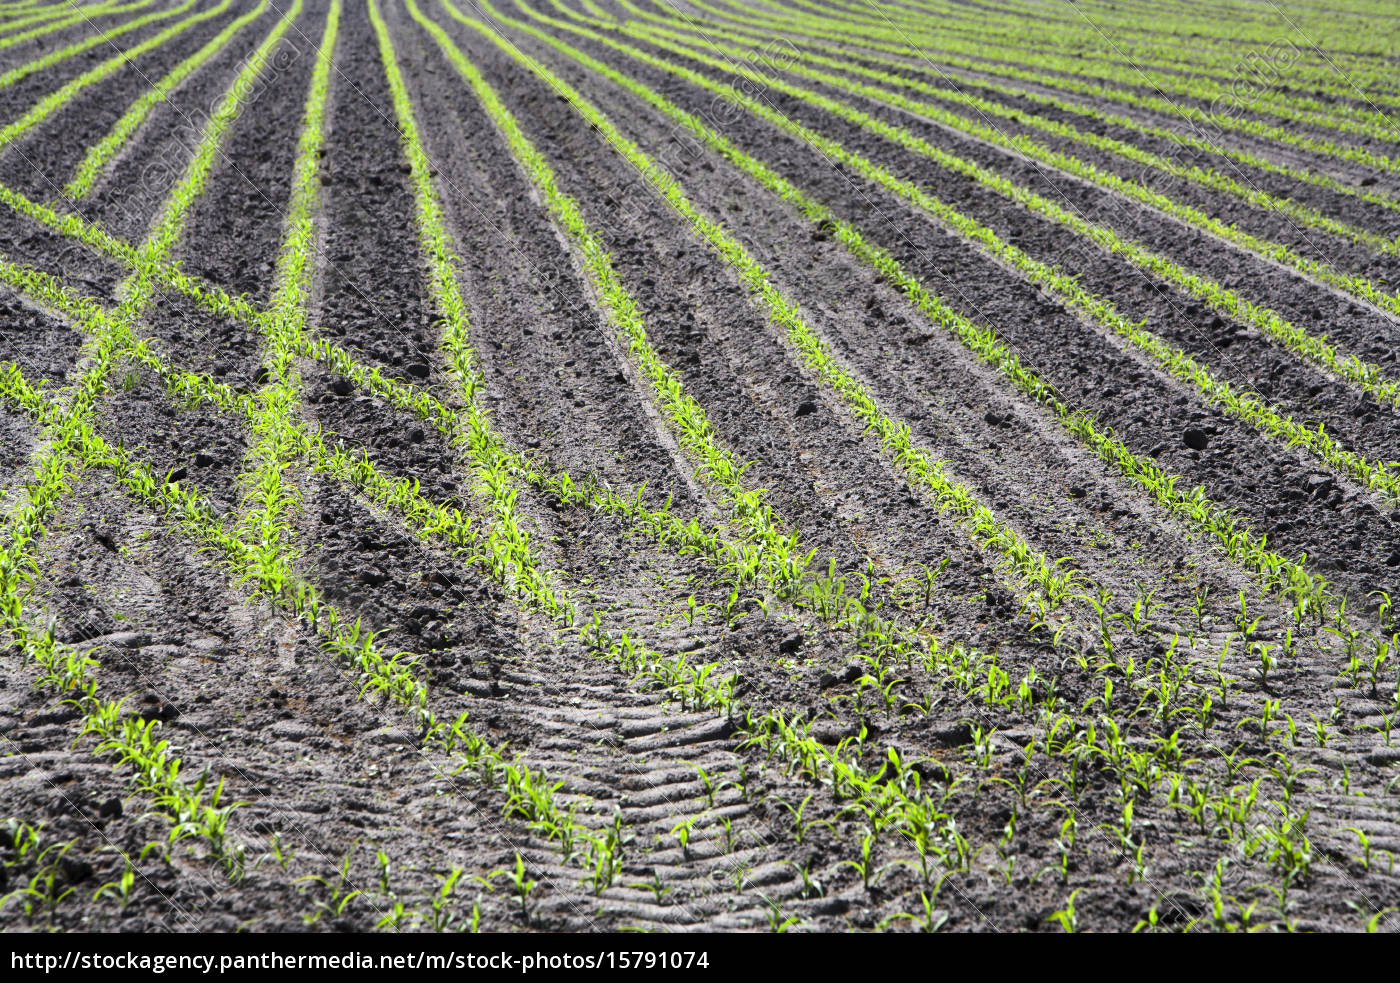 just, planted, corn, field - 15791074